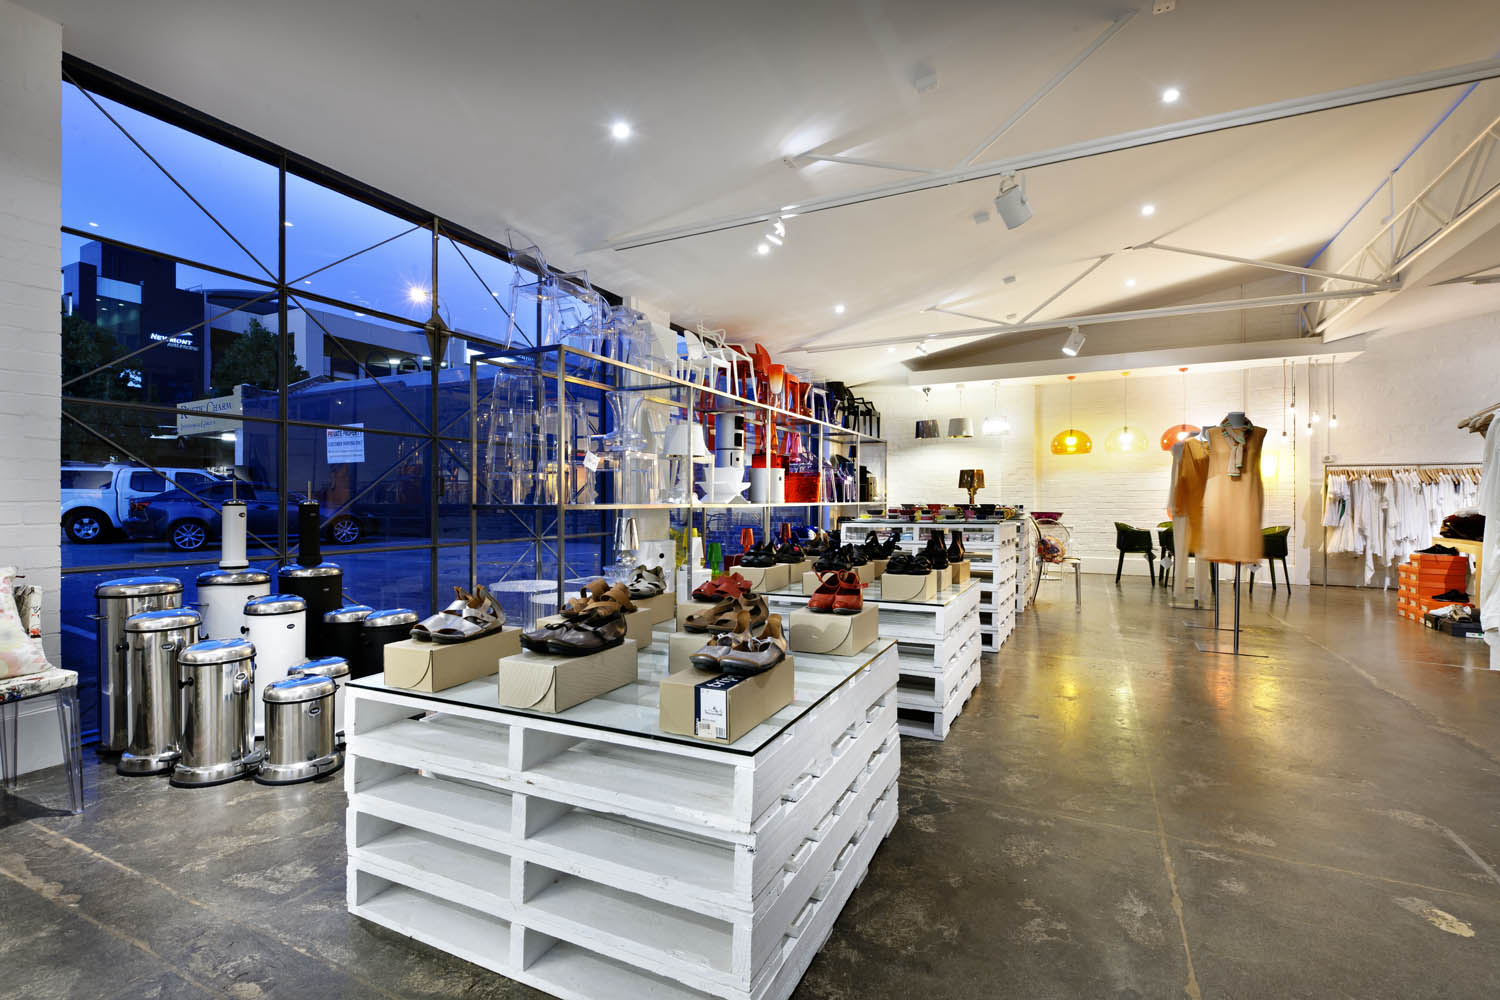 ricarda-subiaco-architectural-clothing-store-architecture-architect-design-designer-western-australia-commercial-interior.jpg